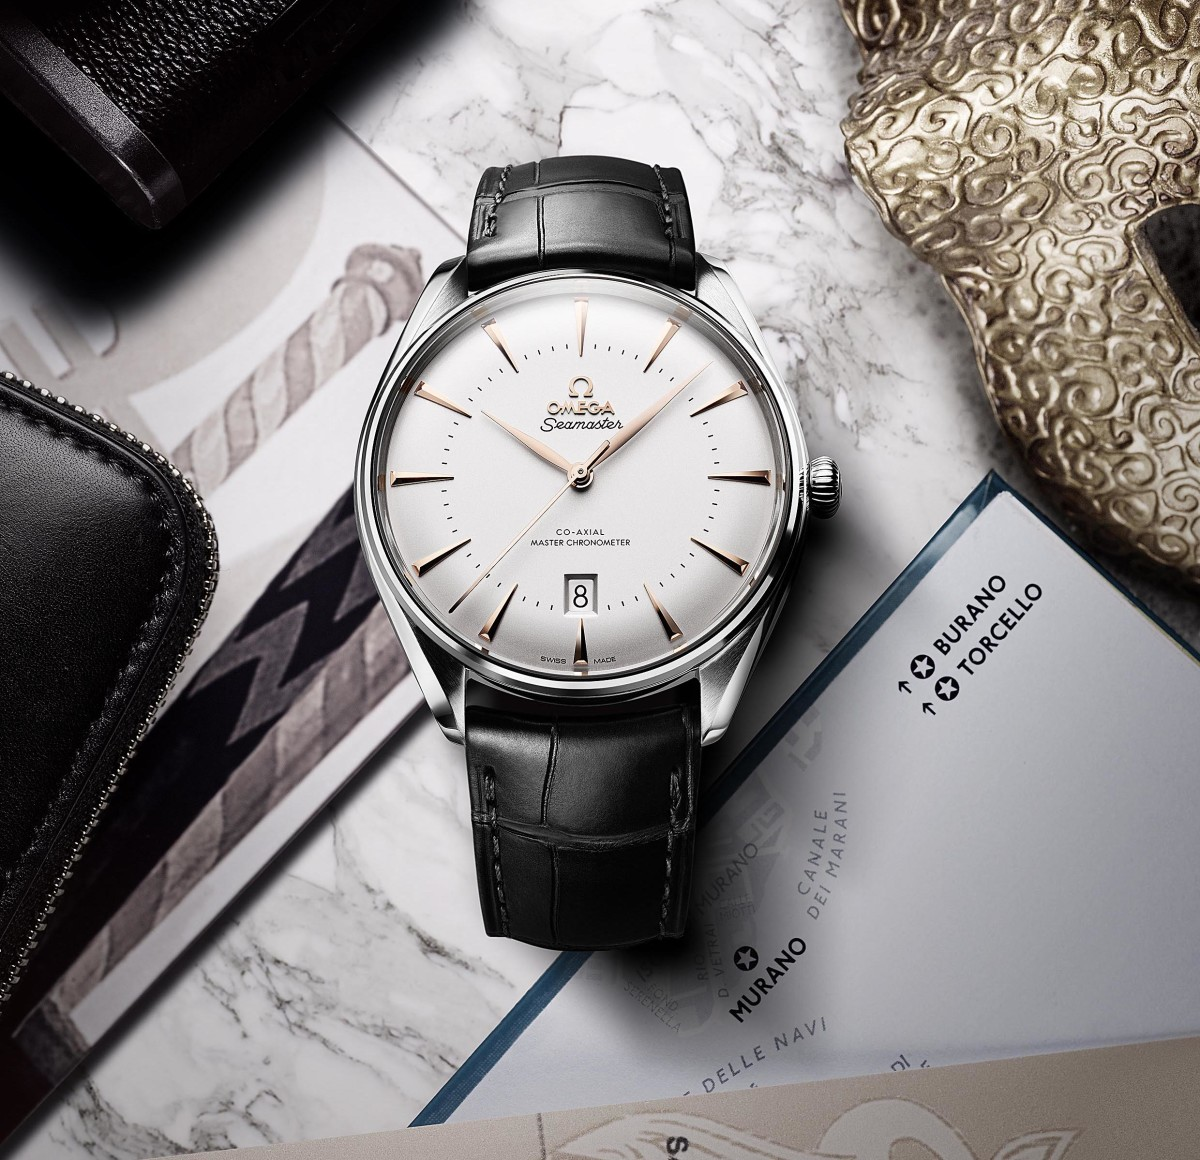 Omega descends upon the floating city of Venice for its latest Seamaster